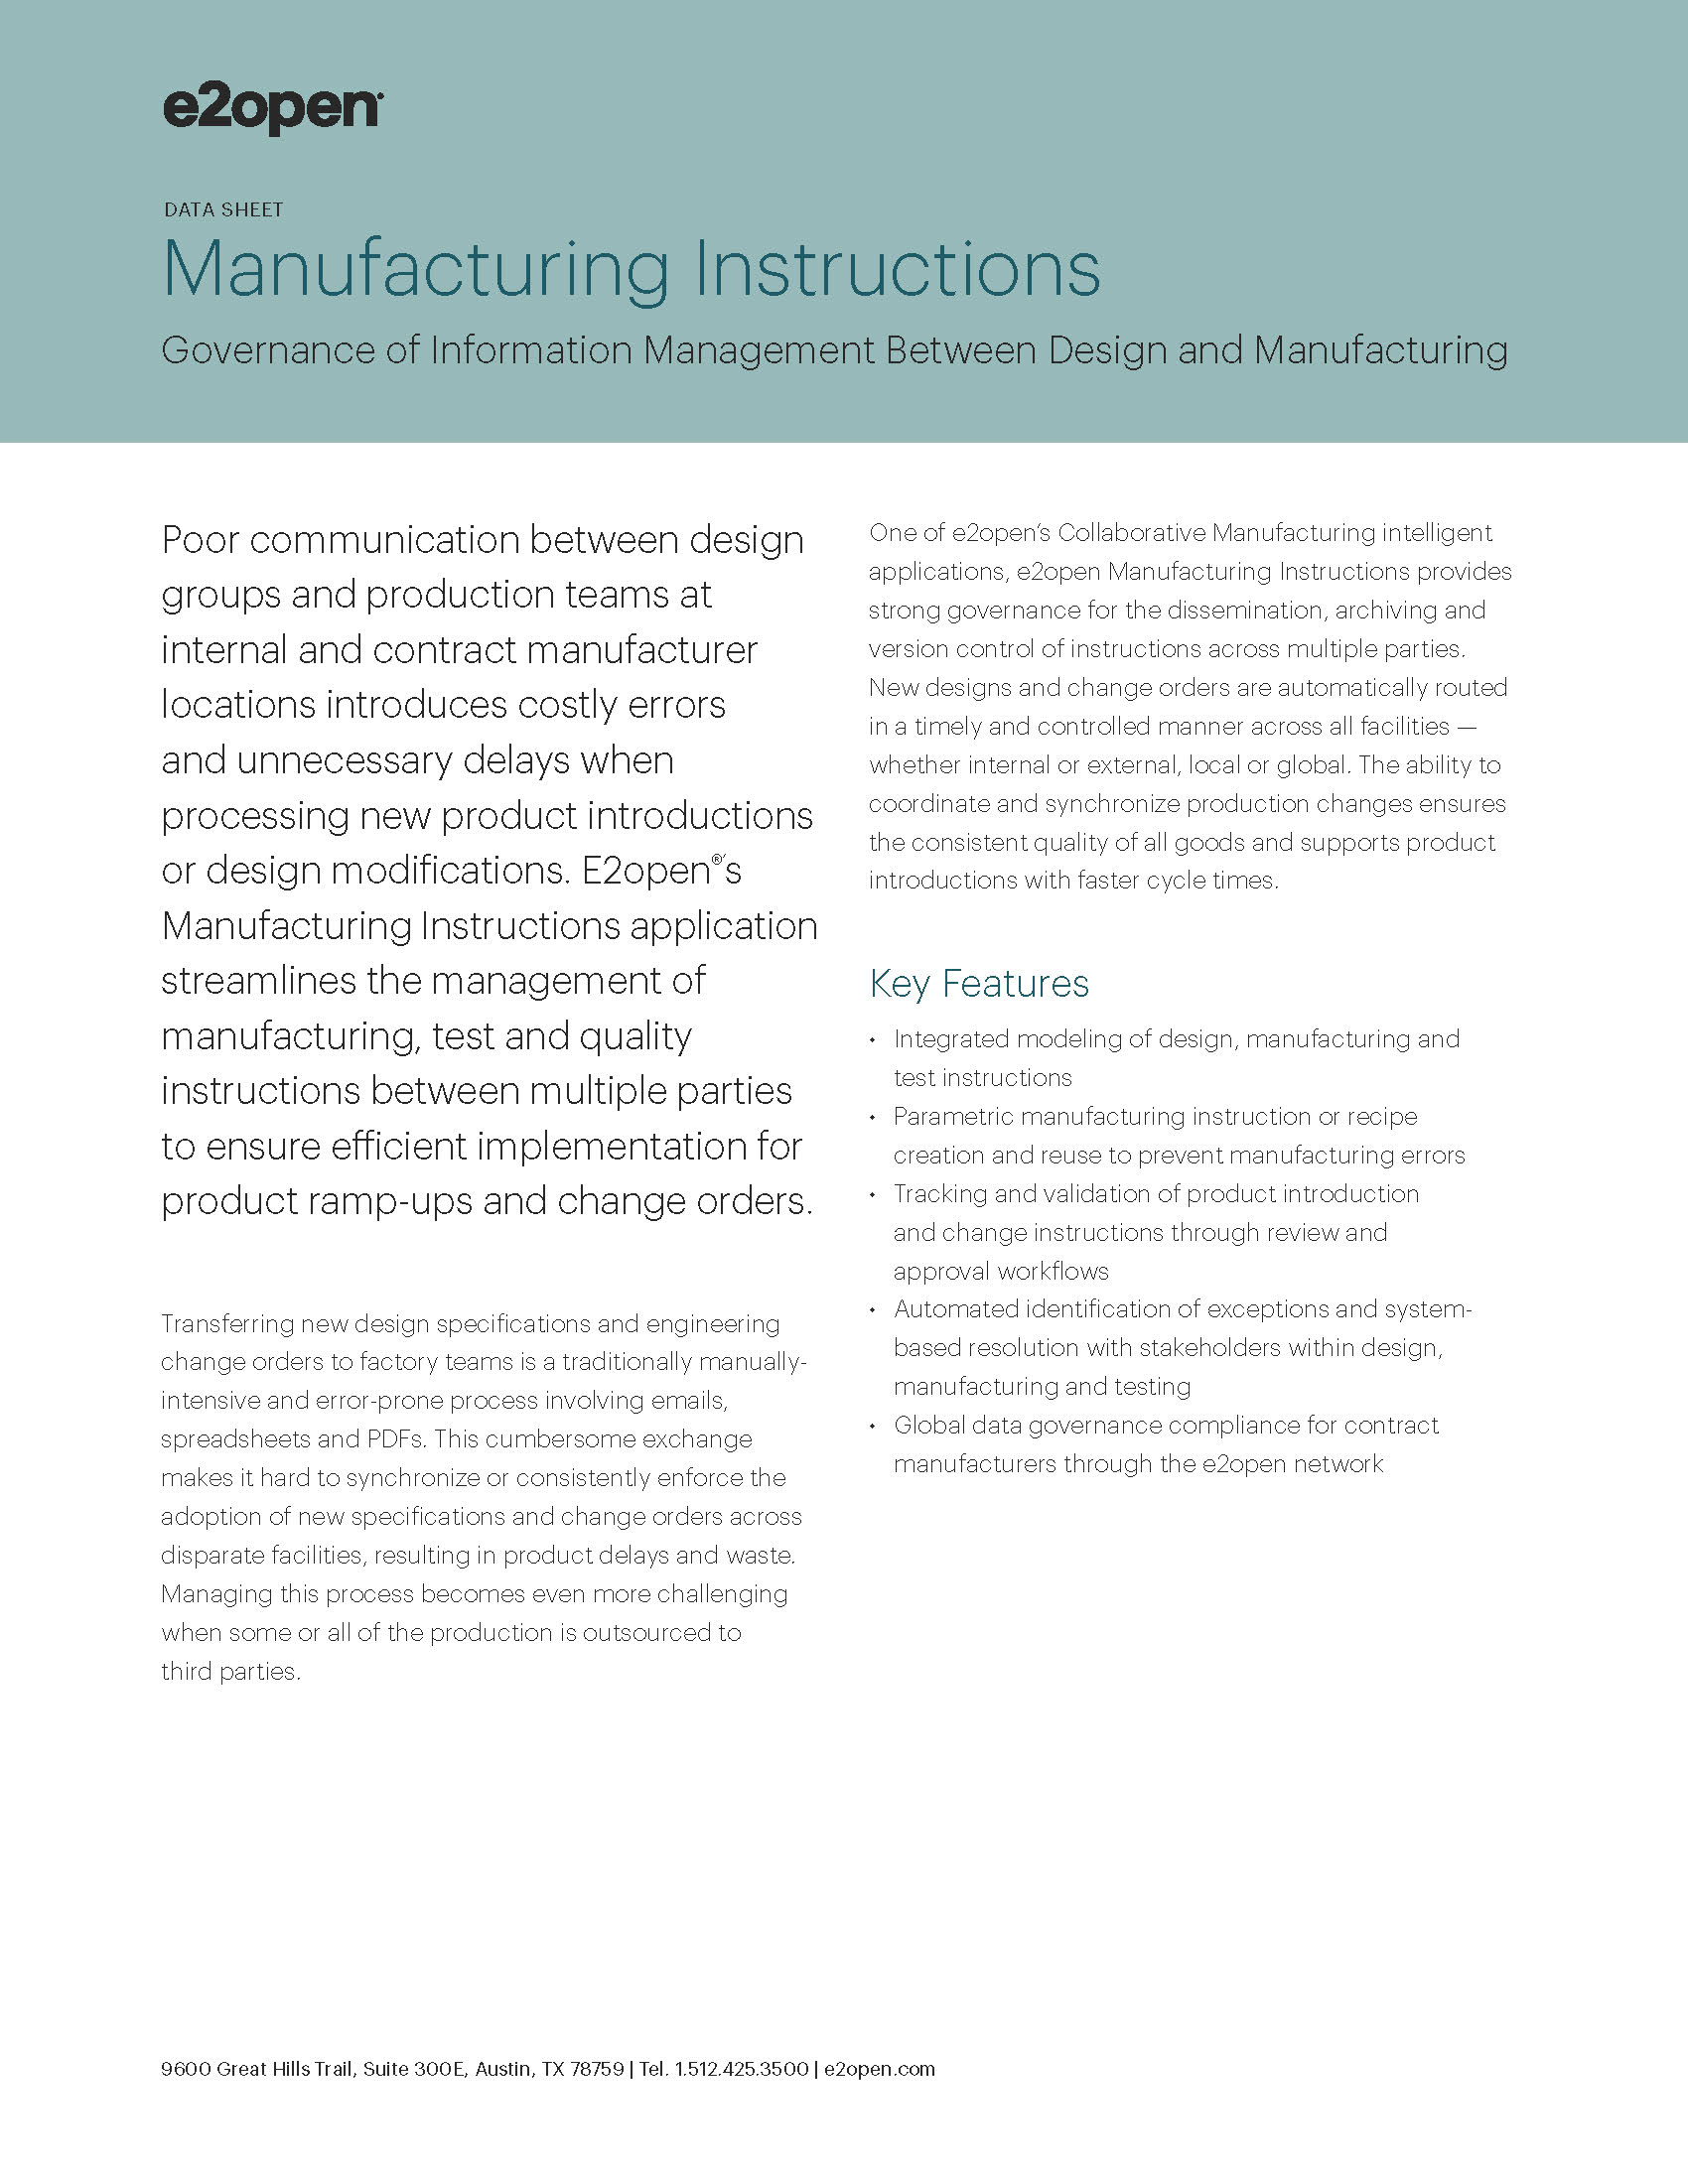 E2open Manufacturing Instructions Data Sheet